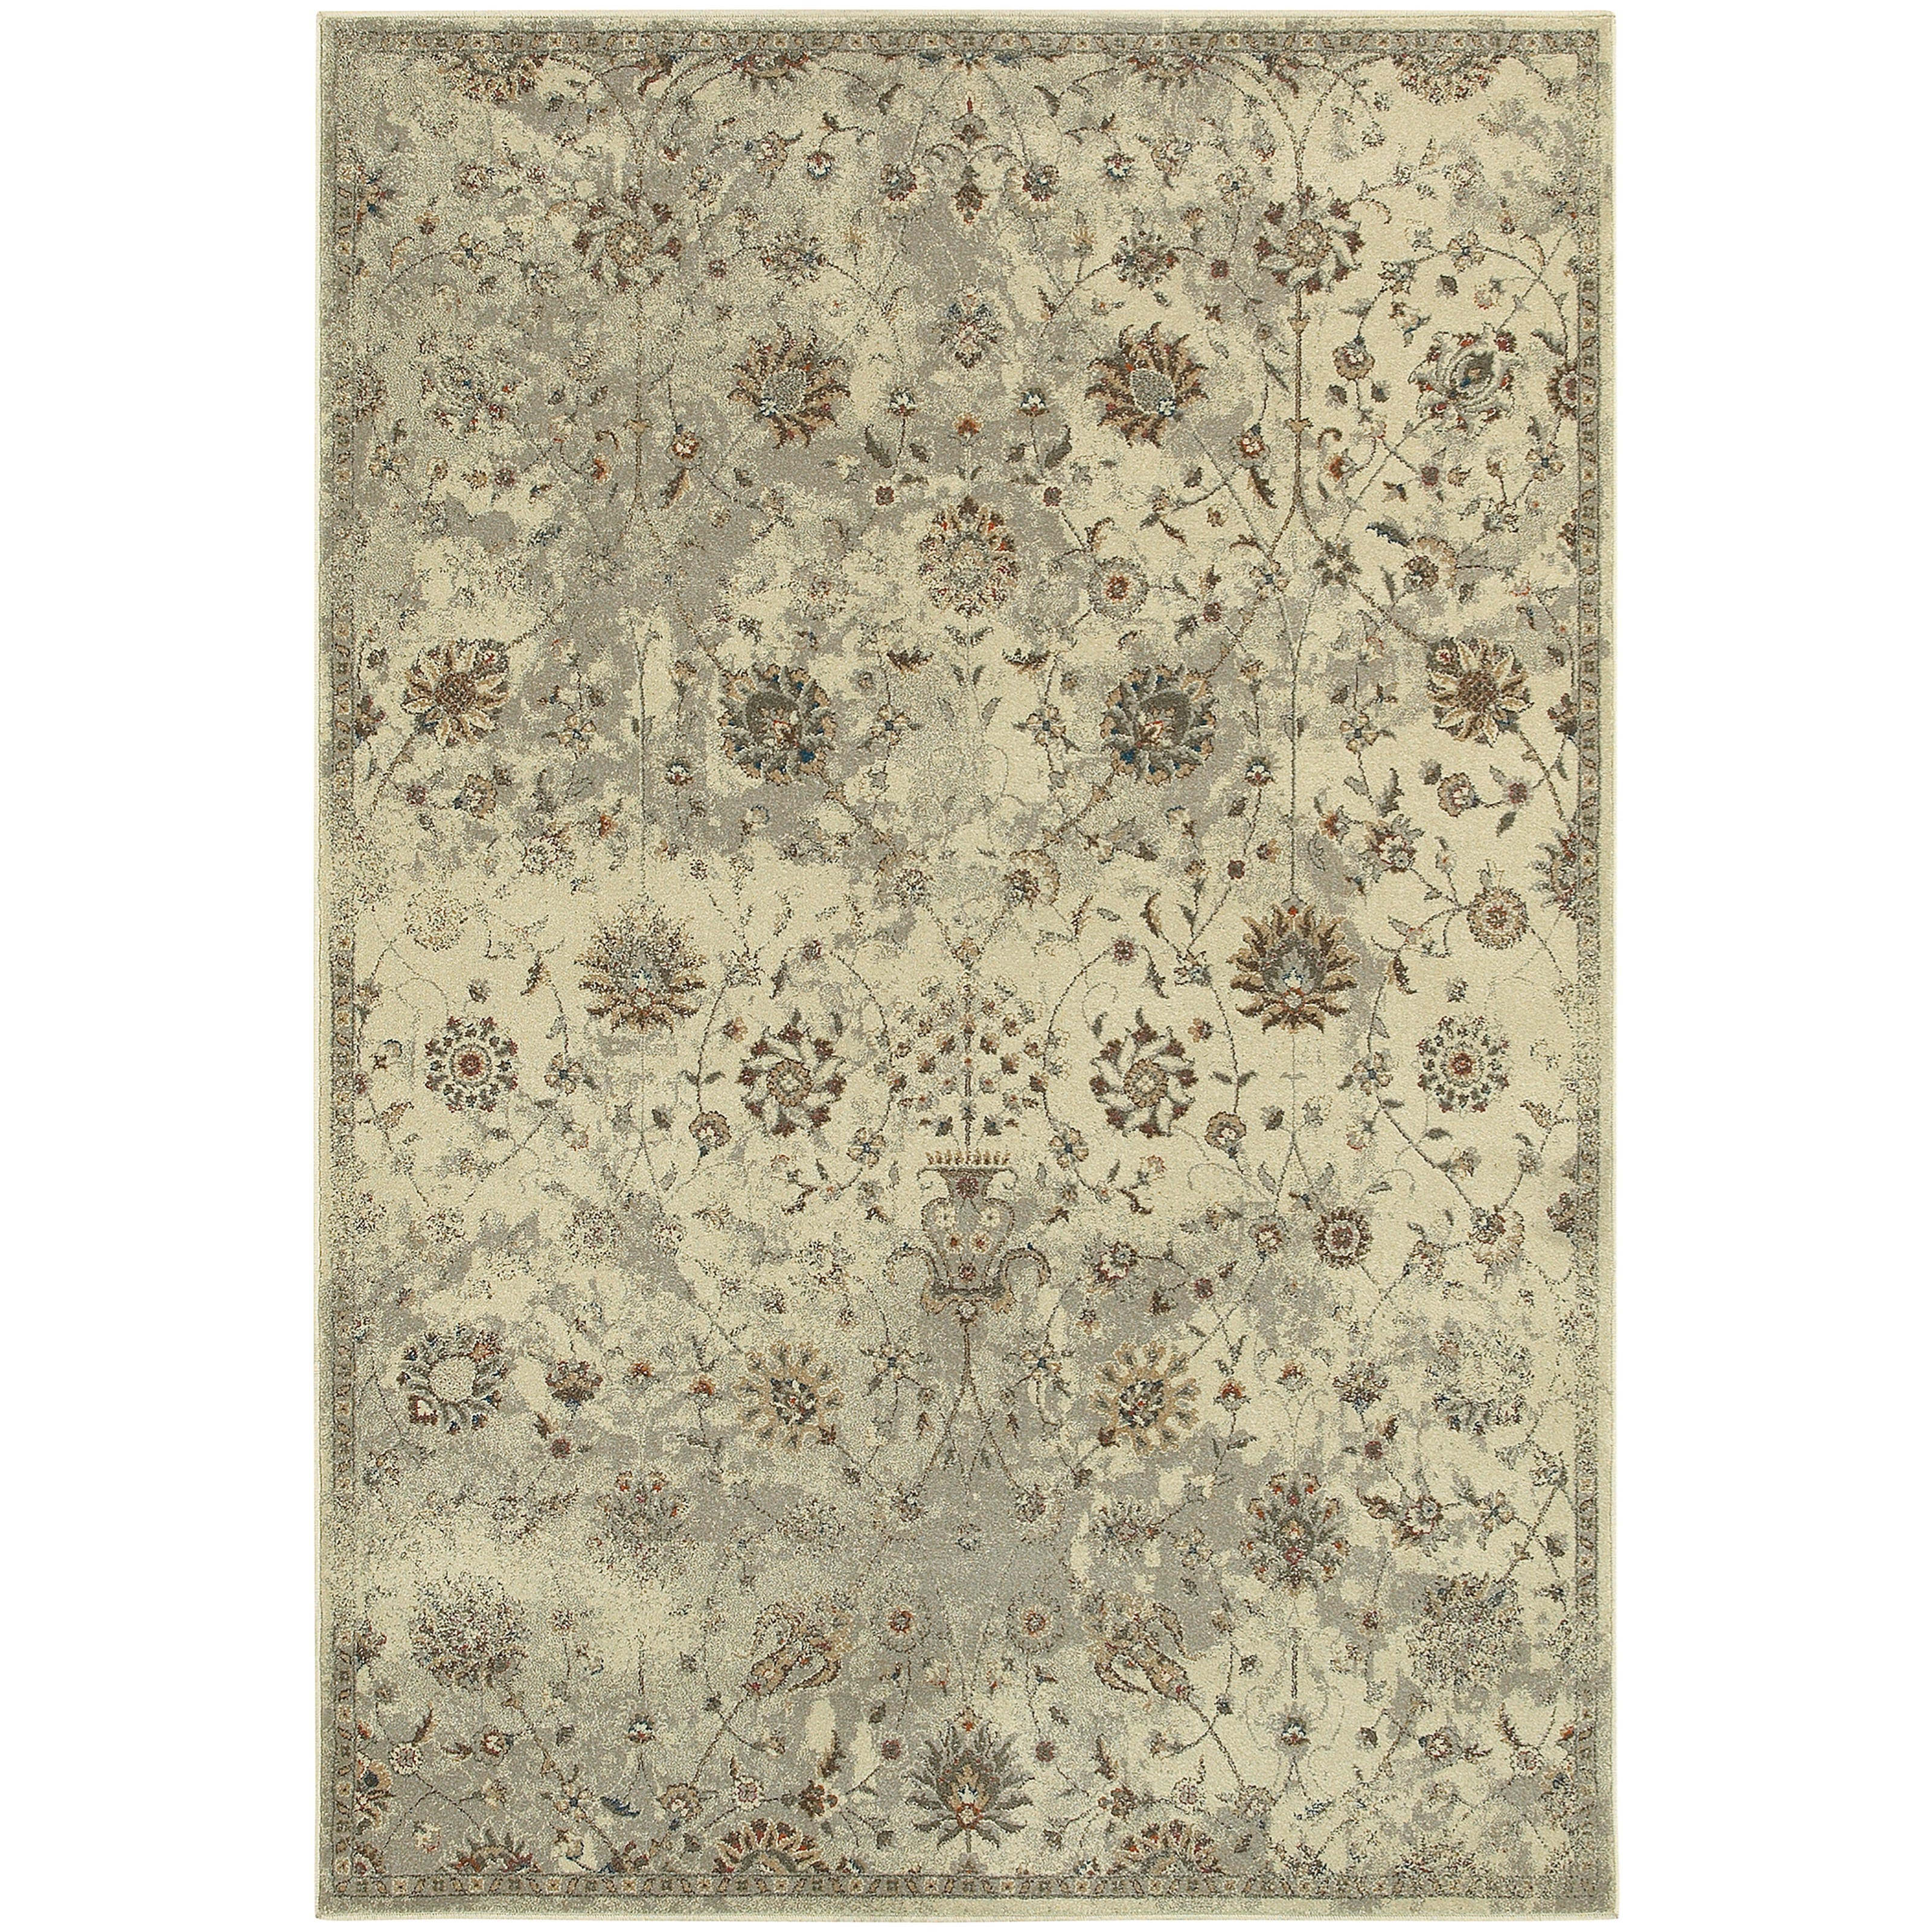 "Pasha 9'10"" X 12'10"" Rectangle Area Rug by Oriental Weavers at Rooms for Less"